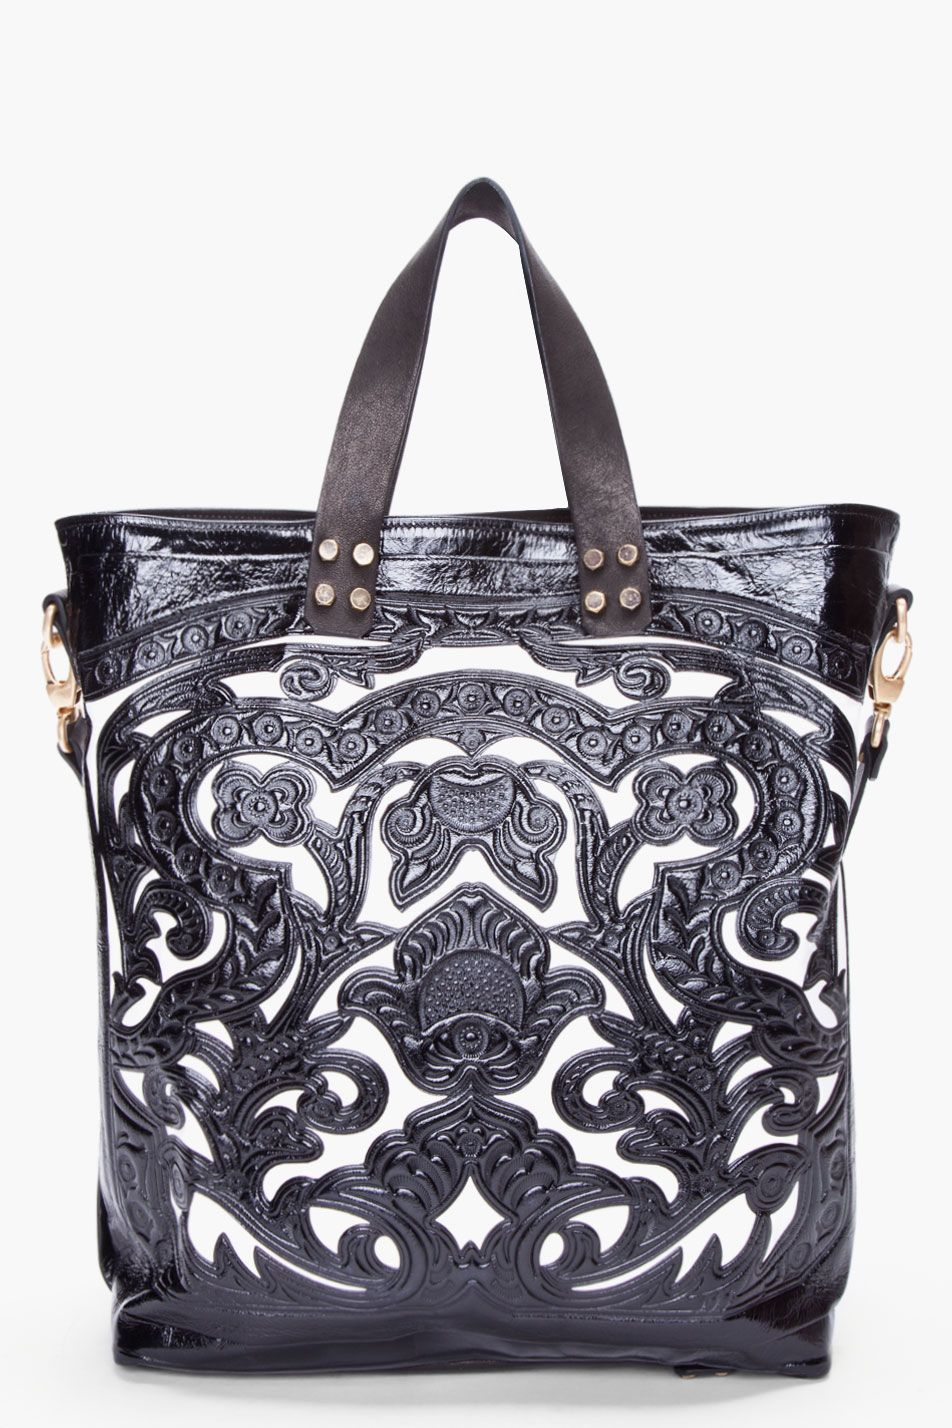 Designer Tote Bags for Women